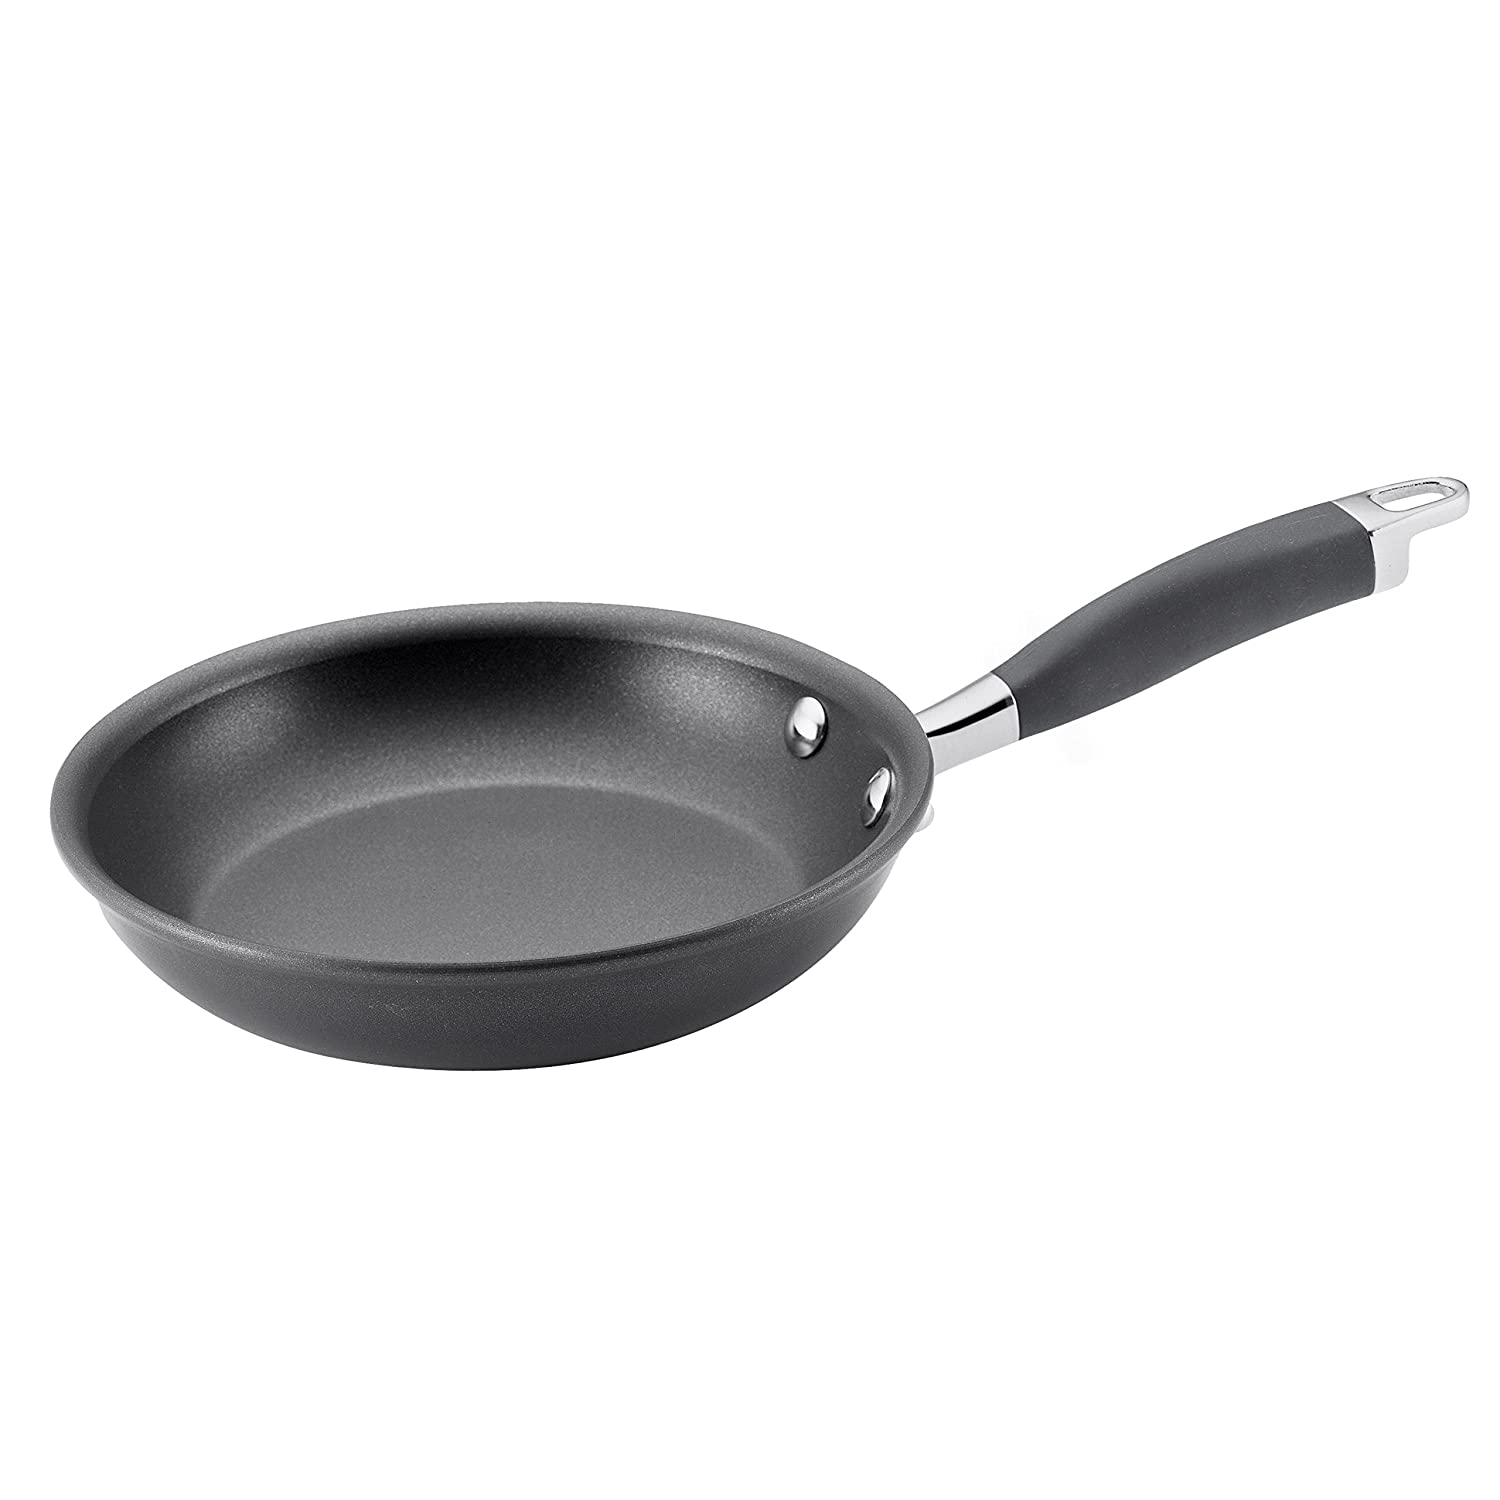 Anolon Advanced Hard-Anodized Nonstick 8-Inch French Skillet, Gray